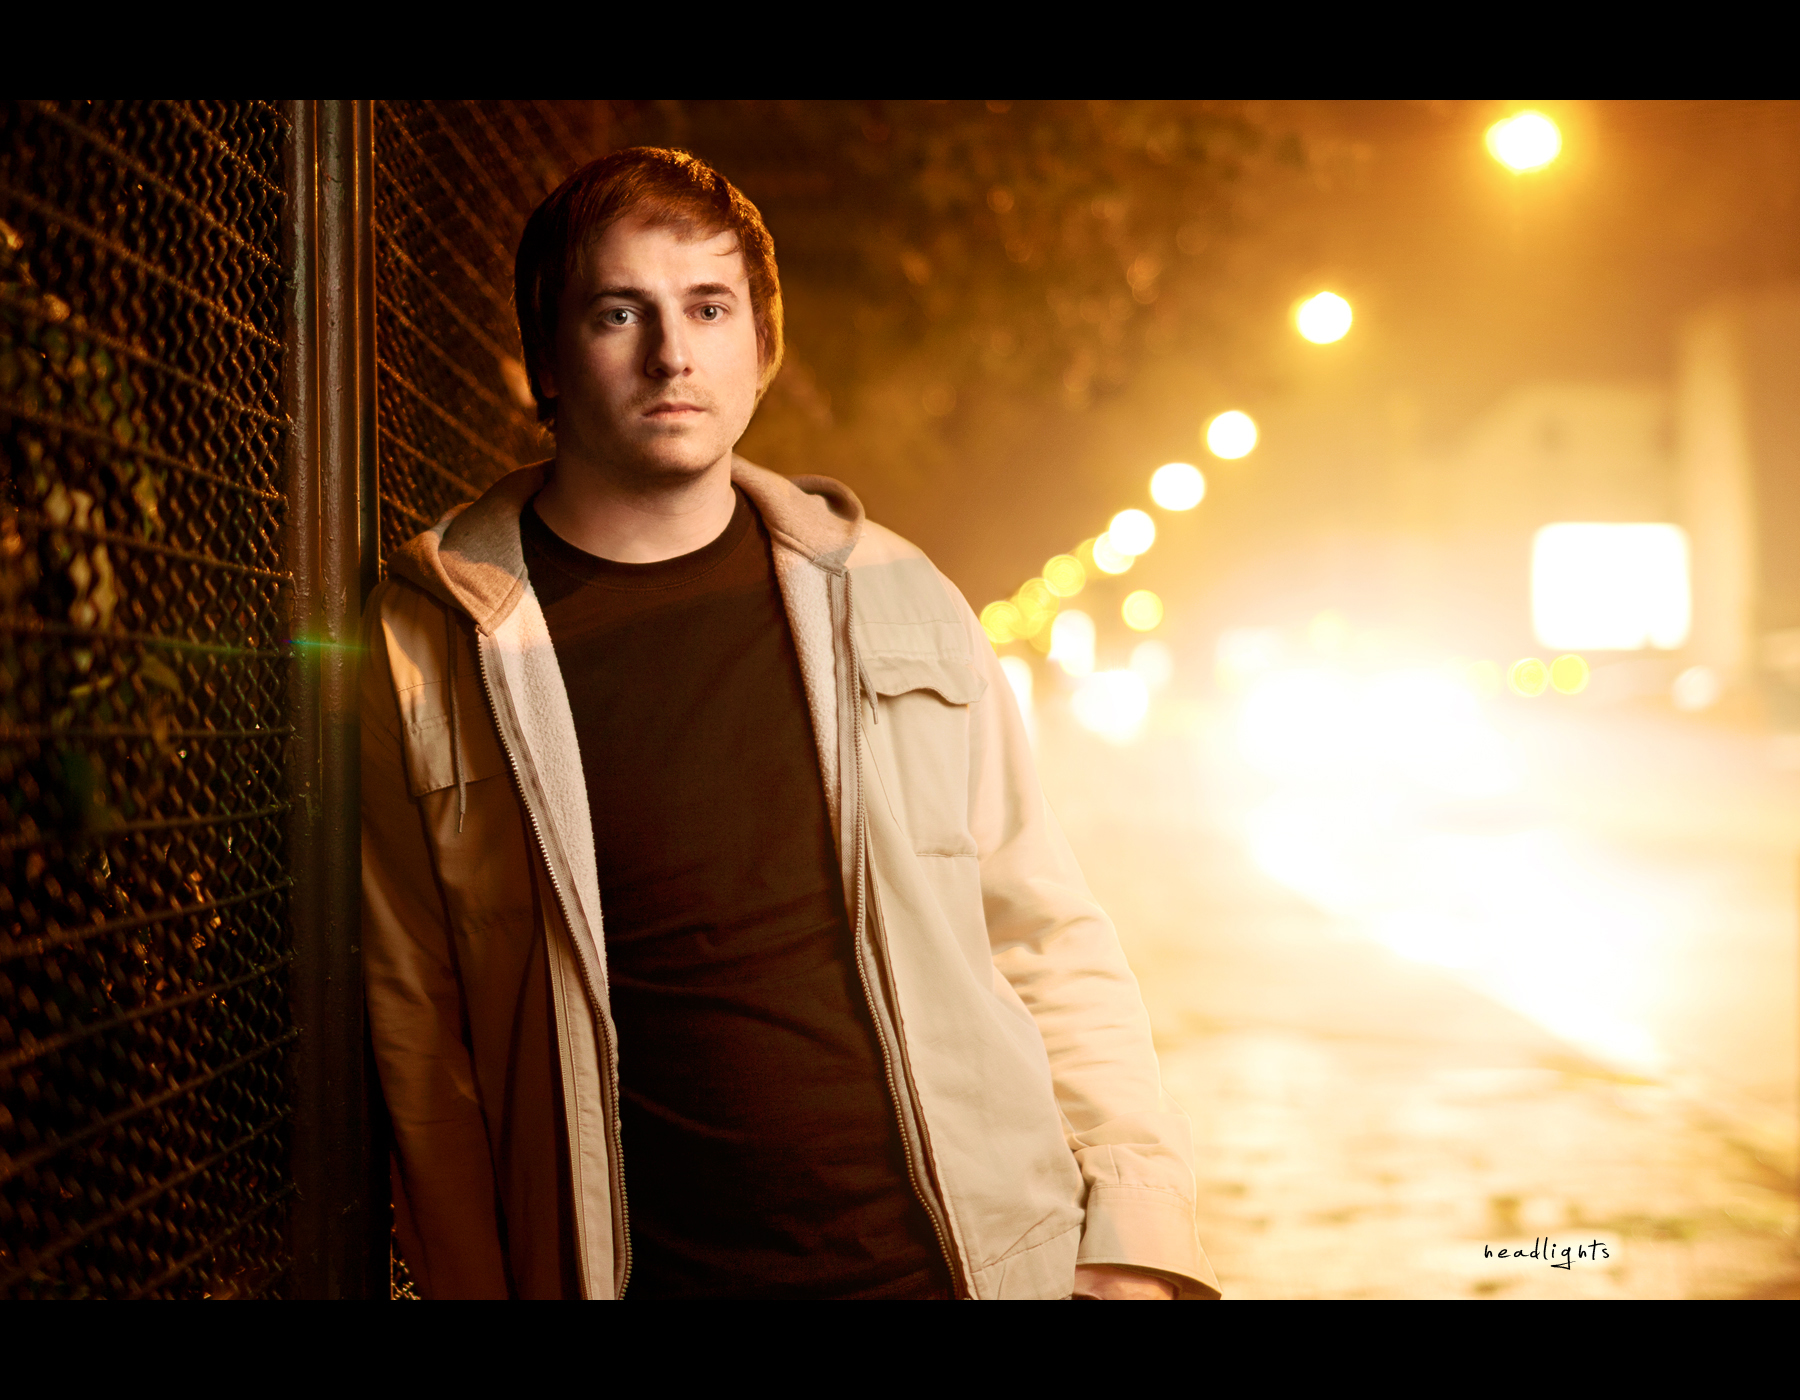 Project 365, Day 357, 357/365, Self Portrait, Bokeh, Strobist, flare, cars, streetshot, nightshot, headlights, warm, ourdailychallenge, odc, bokeh bubbles, bokeh balls, Sigma 50mm F1.4 EX DG HSM, 50 mm,